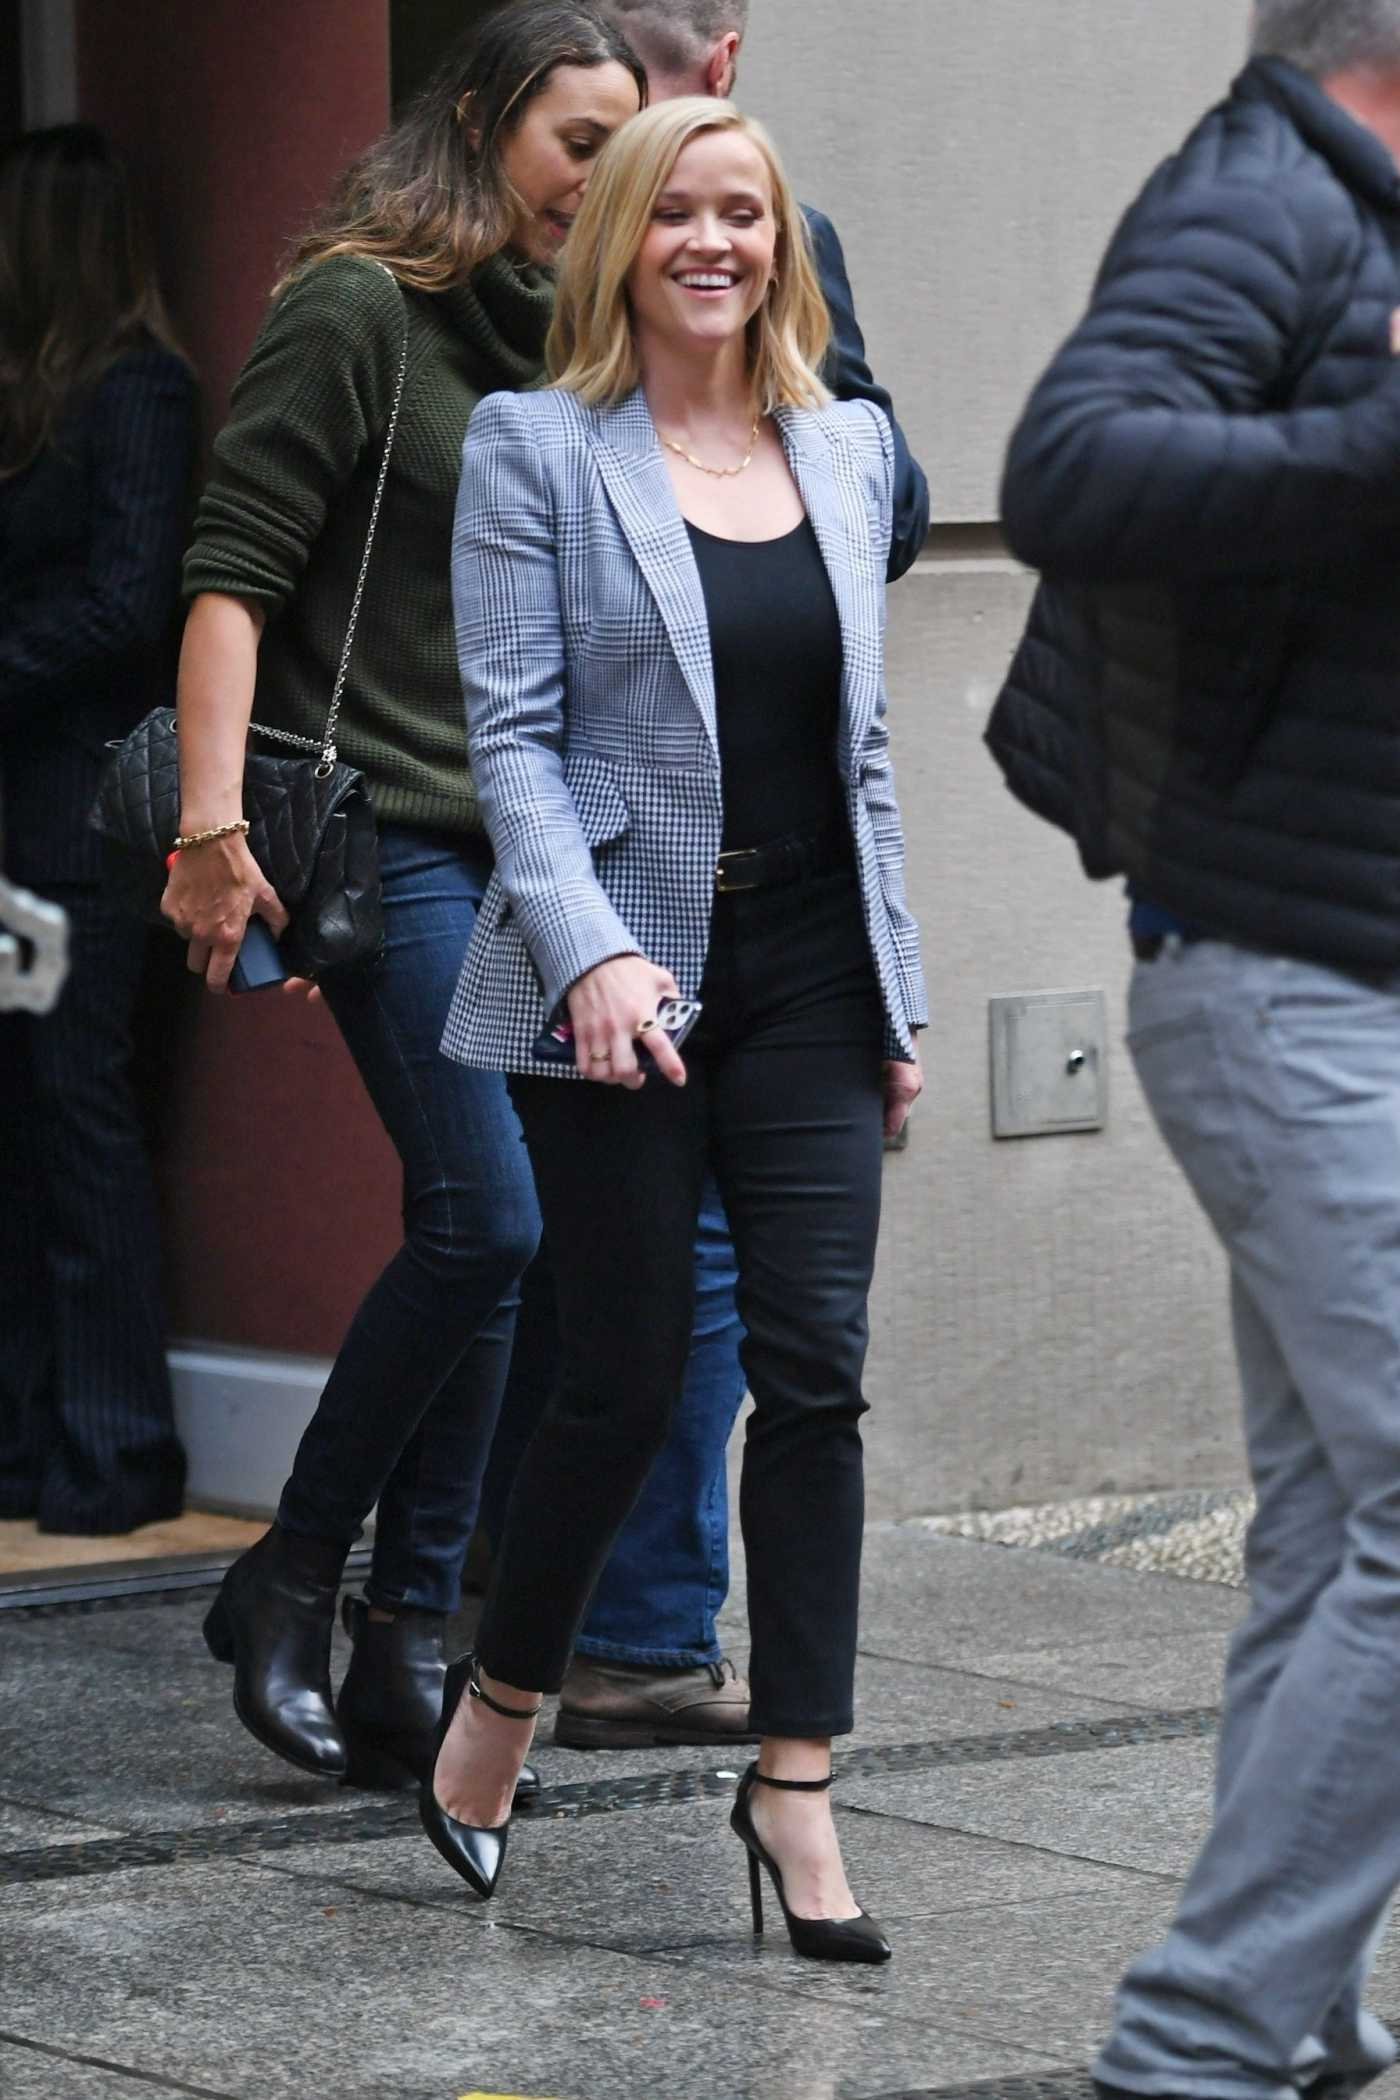 Reese Witherspoon in a Gray Blazer Leaves The Morning Show in Soho, NY 10/27/2019